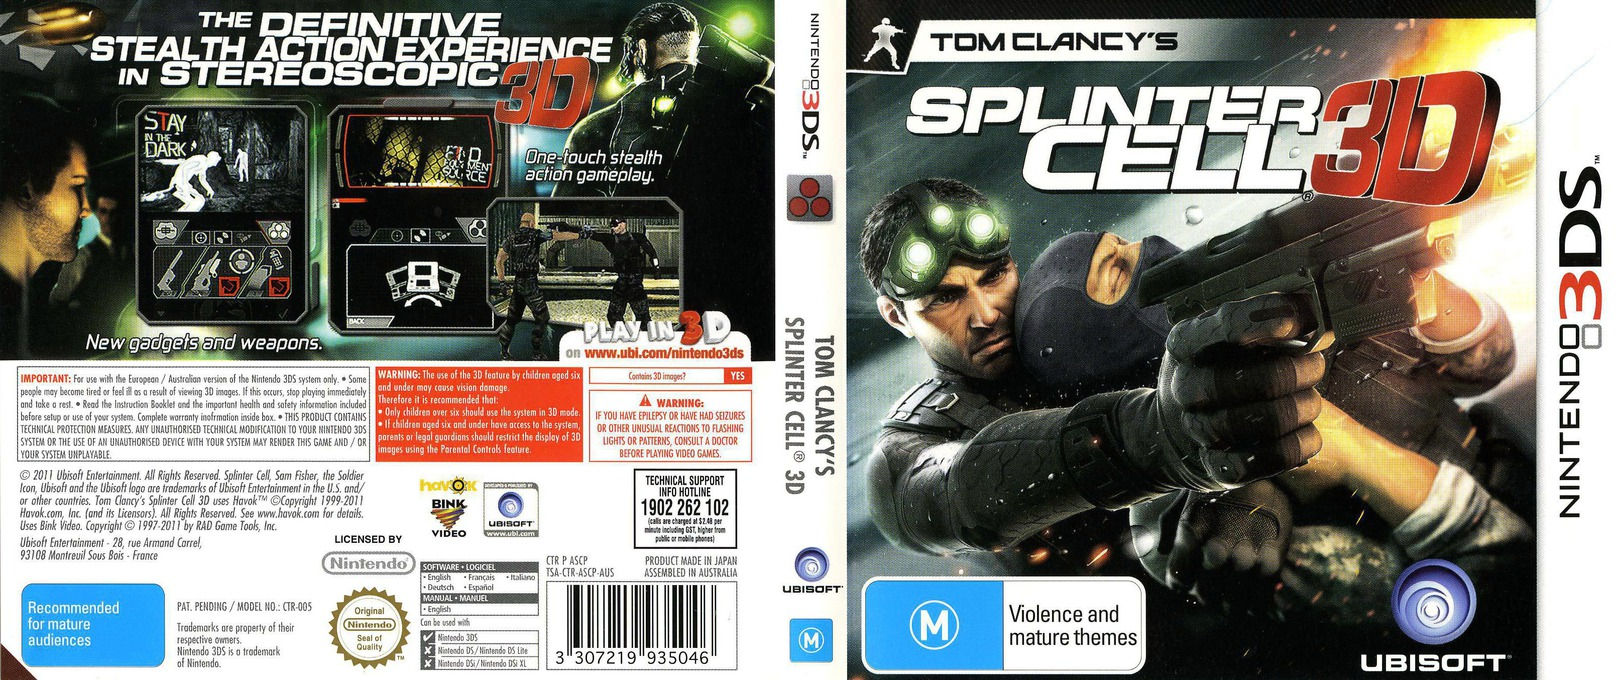 Tom Clancy's Splinter Cell 3D 3DS coverfullHQ (ASCP)